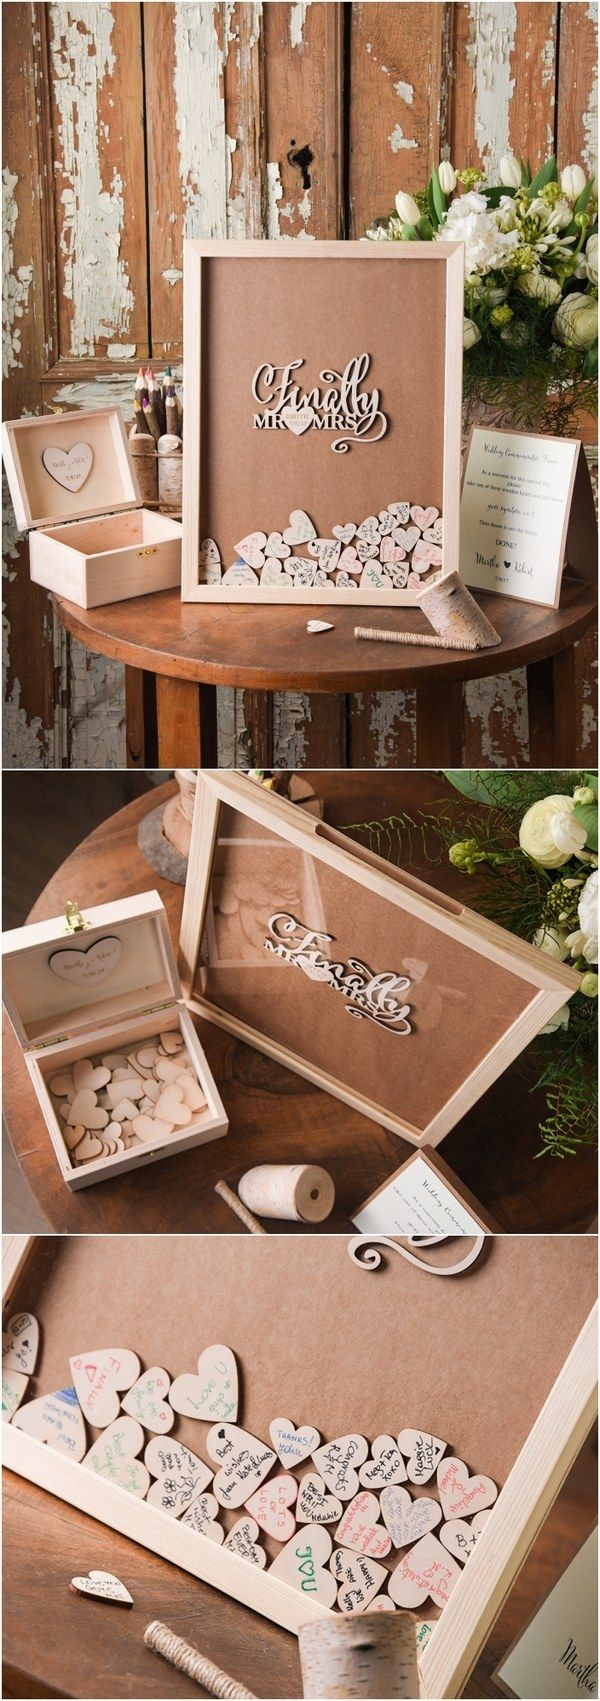 Rustic Laser Cut Wood Wedding Guest Book- Finally Mr&Mrs | Deer Pearl Flowers / http://www.deerpearlflowers.com/rustic-wedding-guest-books-botanical-wedding-invitations/rustic-laser-cut-wood-wedding-guest-book-finally-mrmrs/